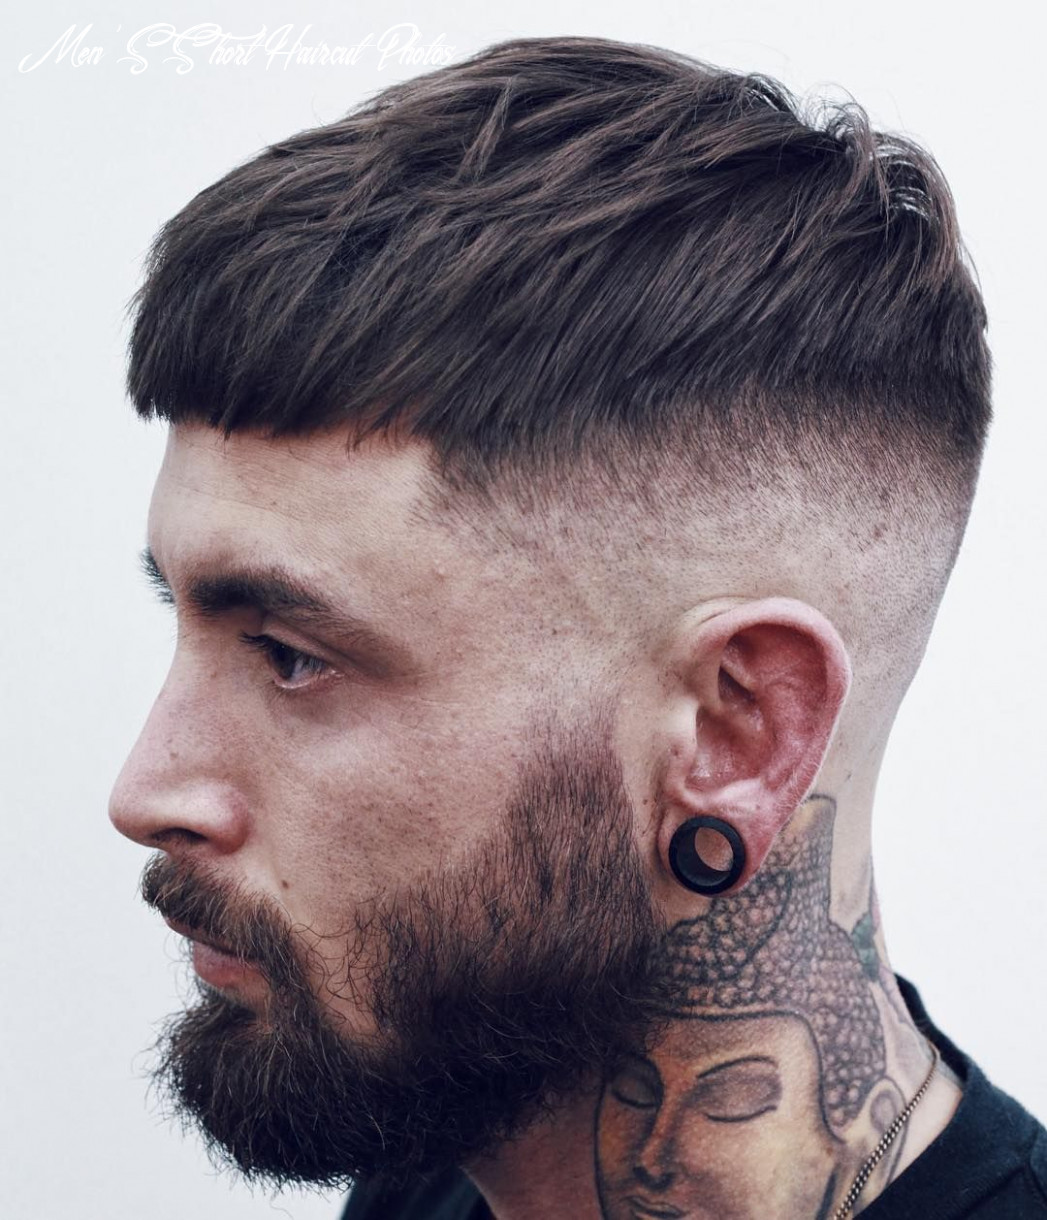 8 cool short haircuts hairstyles for men (8 update) | mens